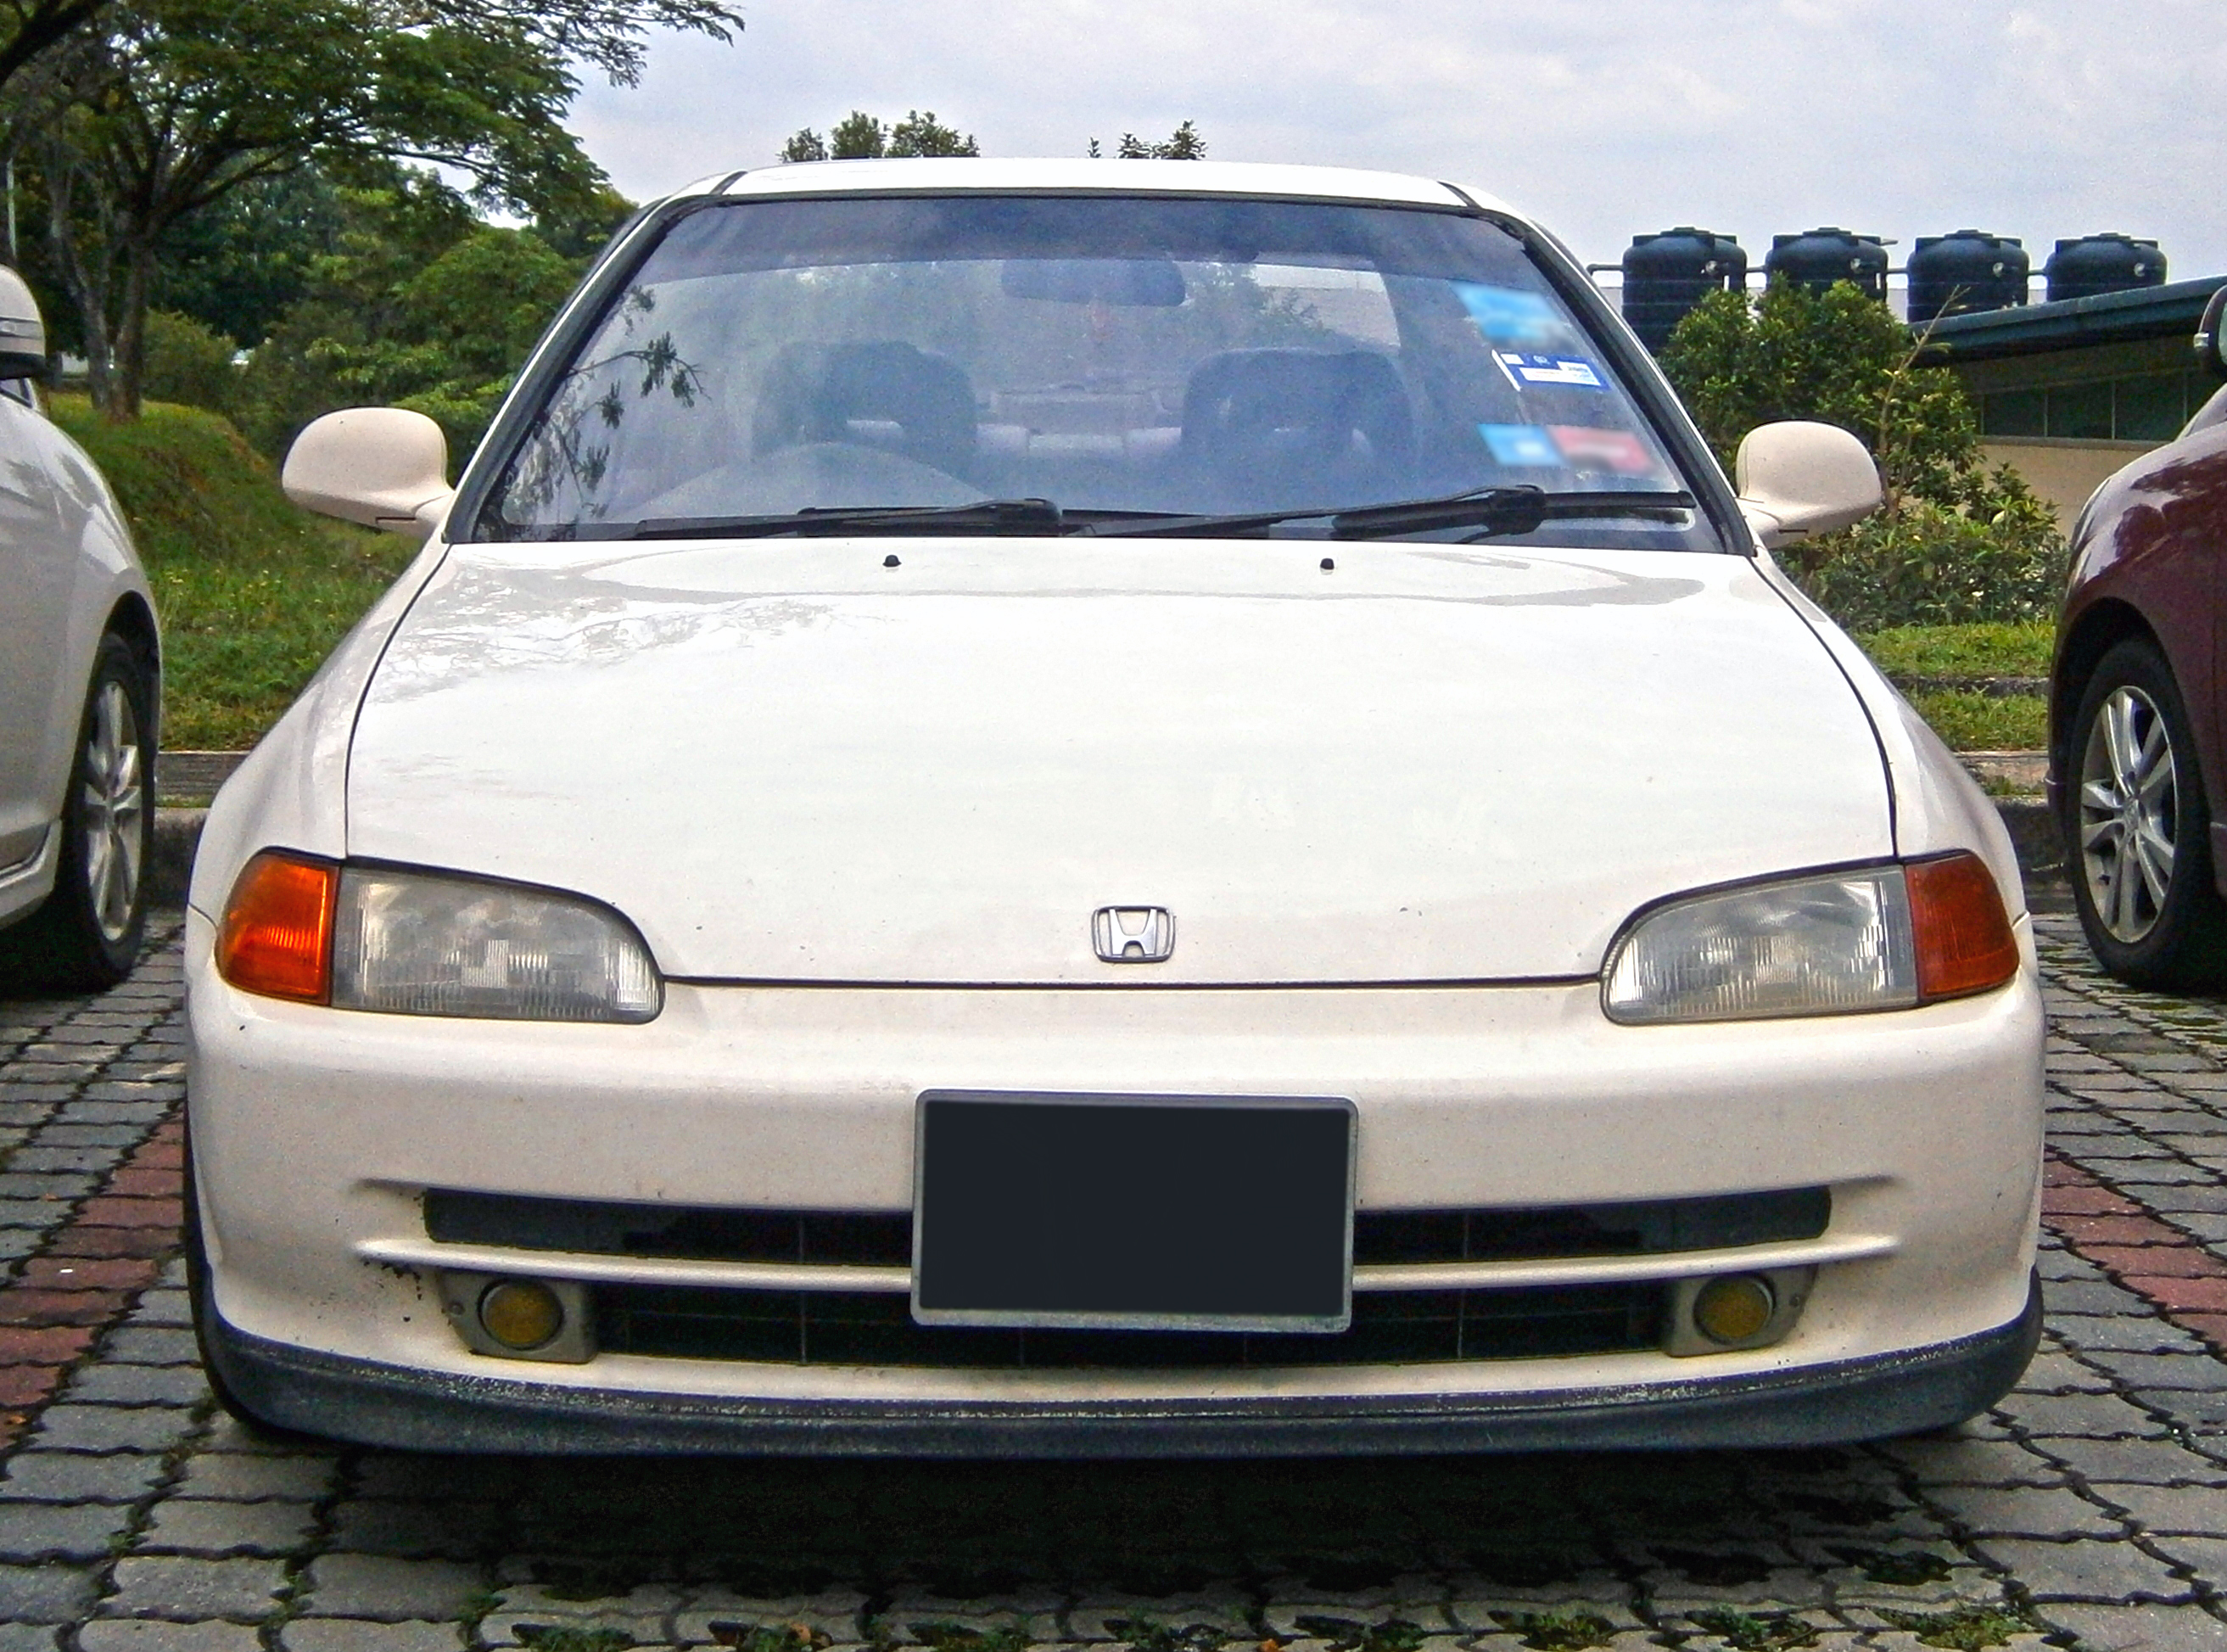 file 1992 honda civic ferio sir sedan modified in cyberjaya malaysia 01     wikimedia commons